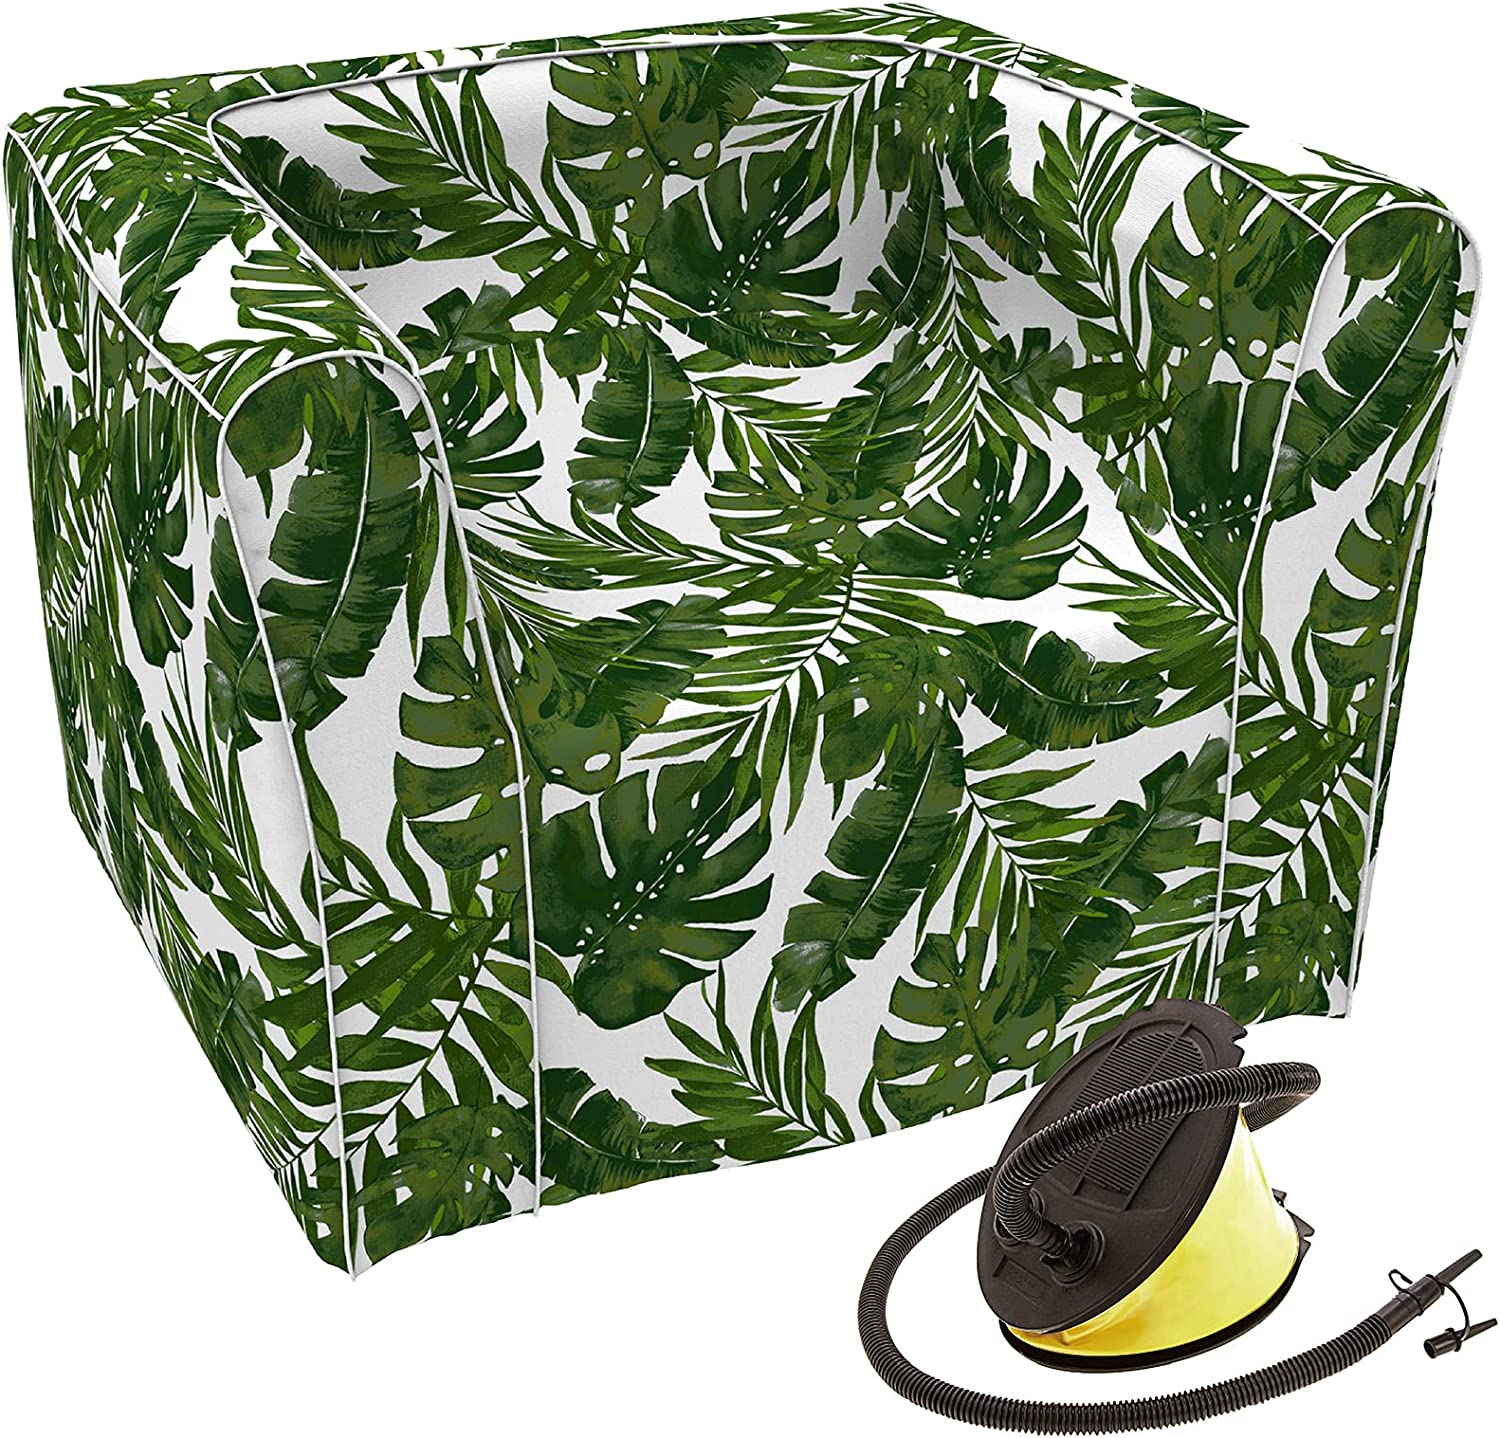 LVTXIII Outdoor Inflatable Sofa Chair Air Sofa Seat with Travel Pouch, Patio Lounge Chair Sofa for Adults and Kids, Great for Home Garden Beach (Foot Pump Included) - Palm Green